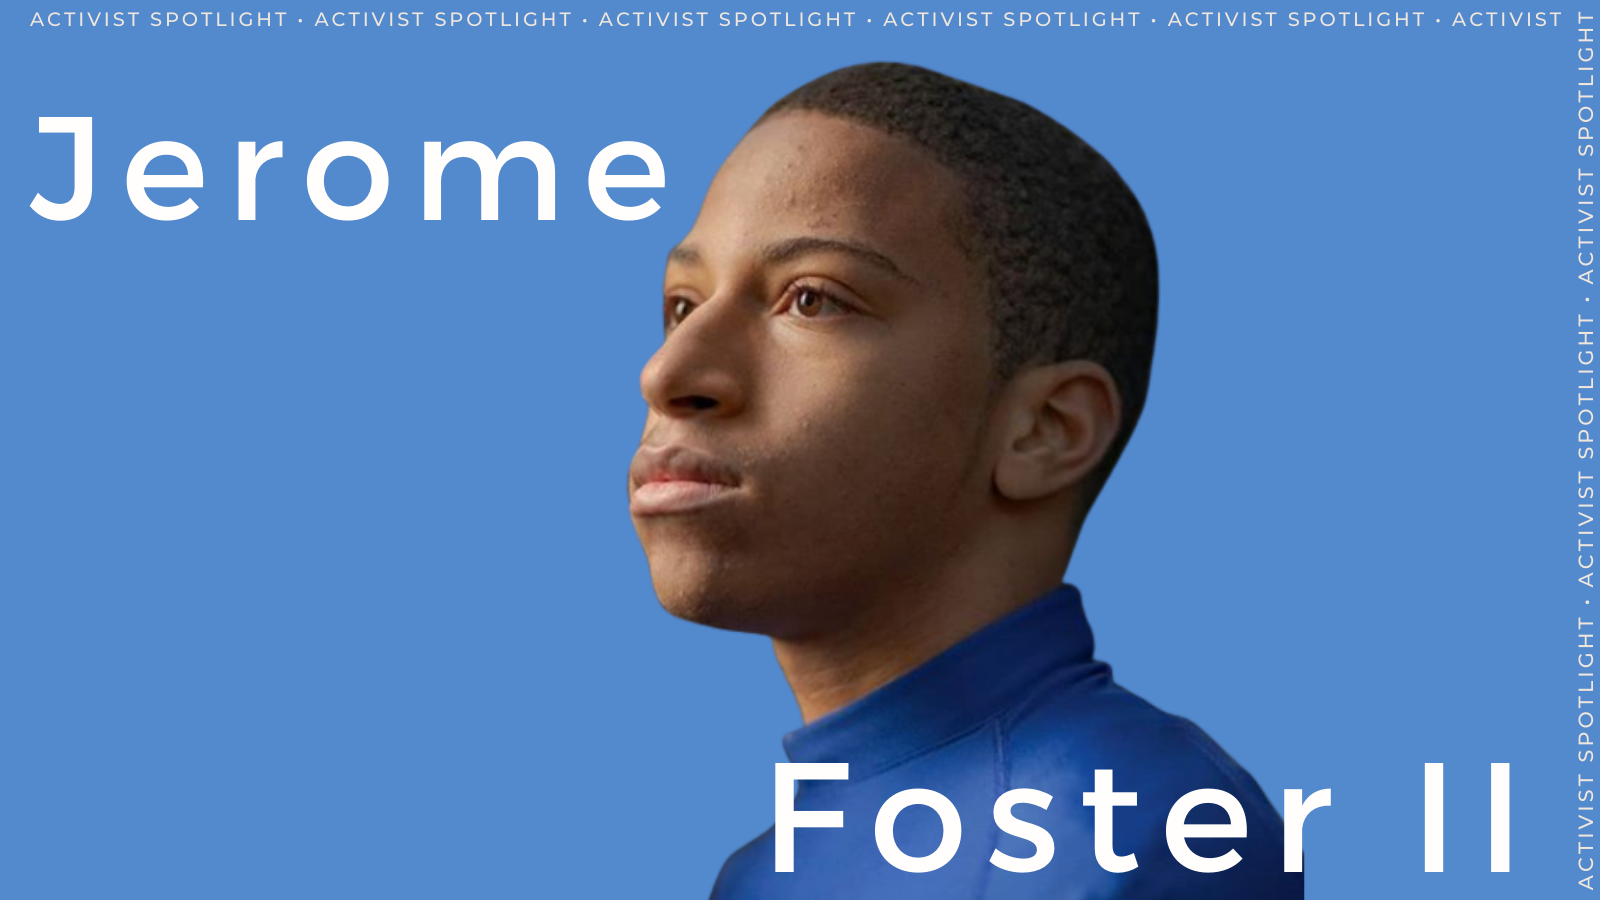 Changemaker Spotlight: Q&A With Voting Rights & Climate Justice Activist Jerome Foster II